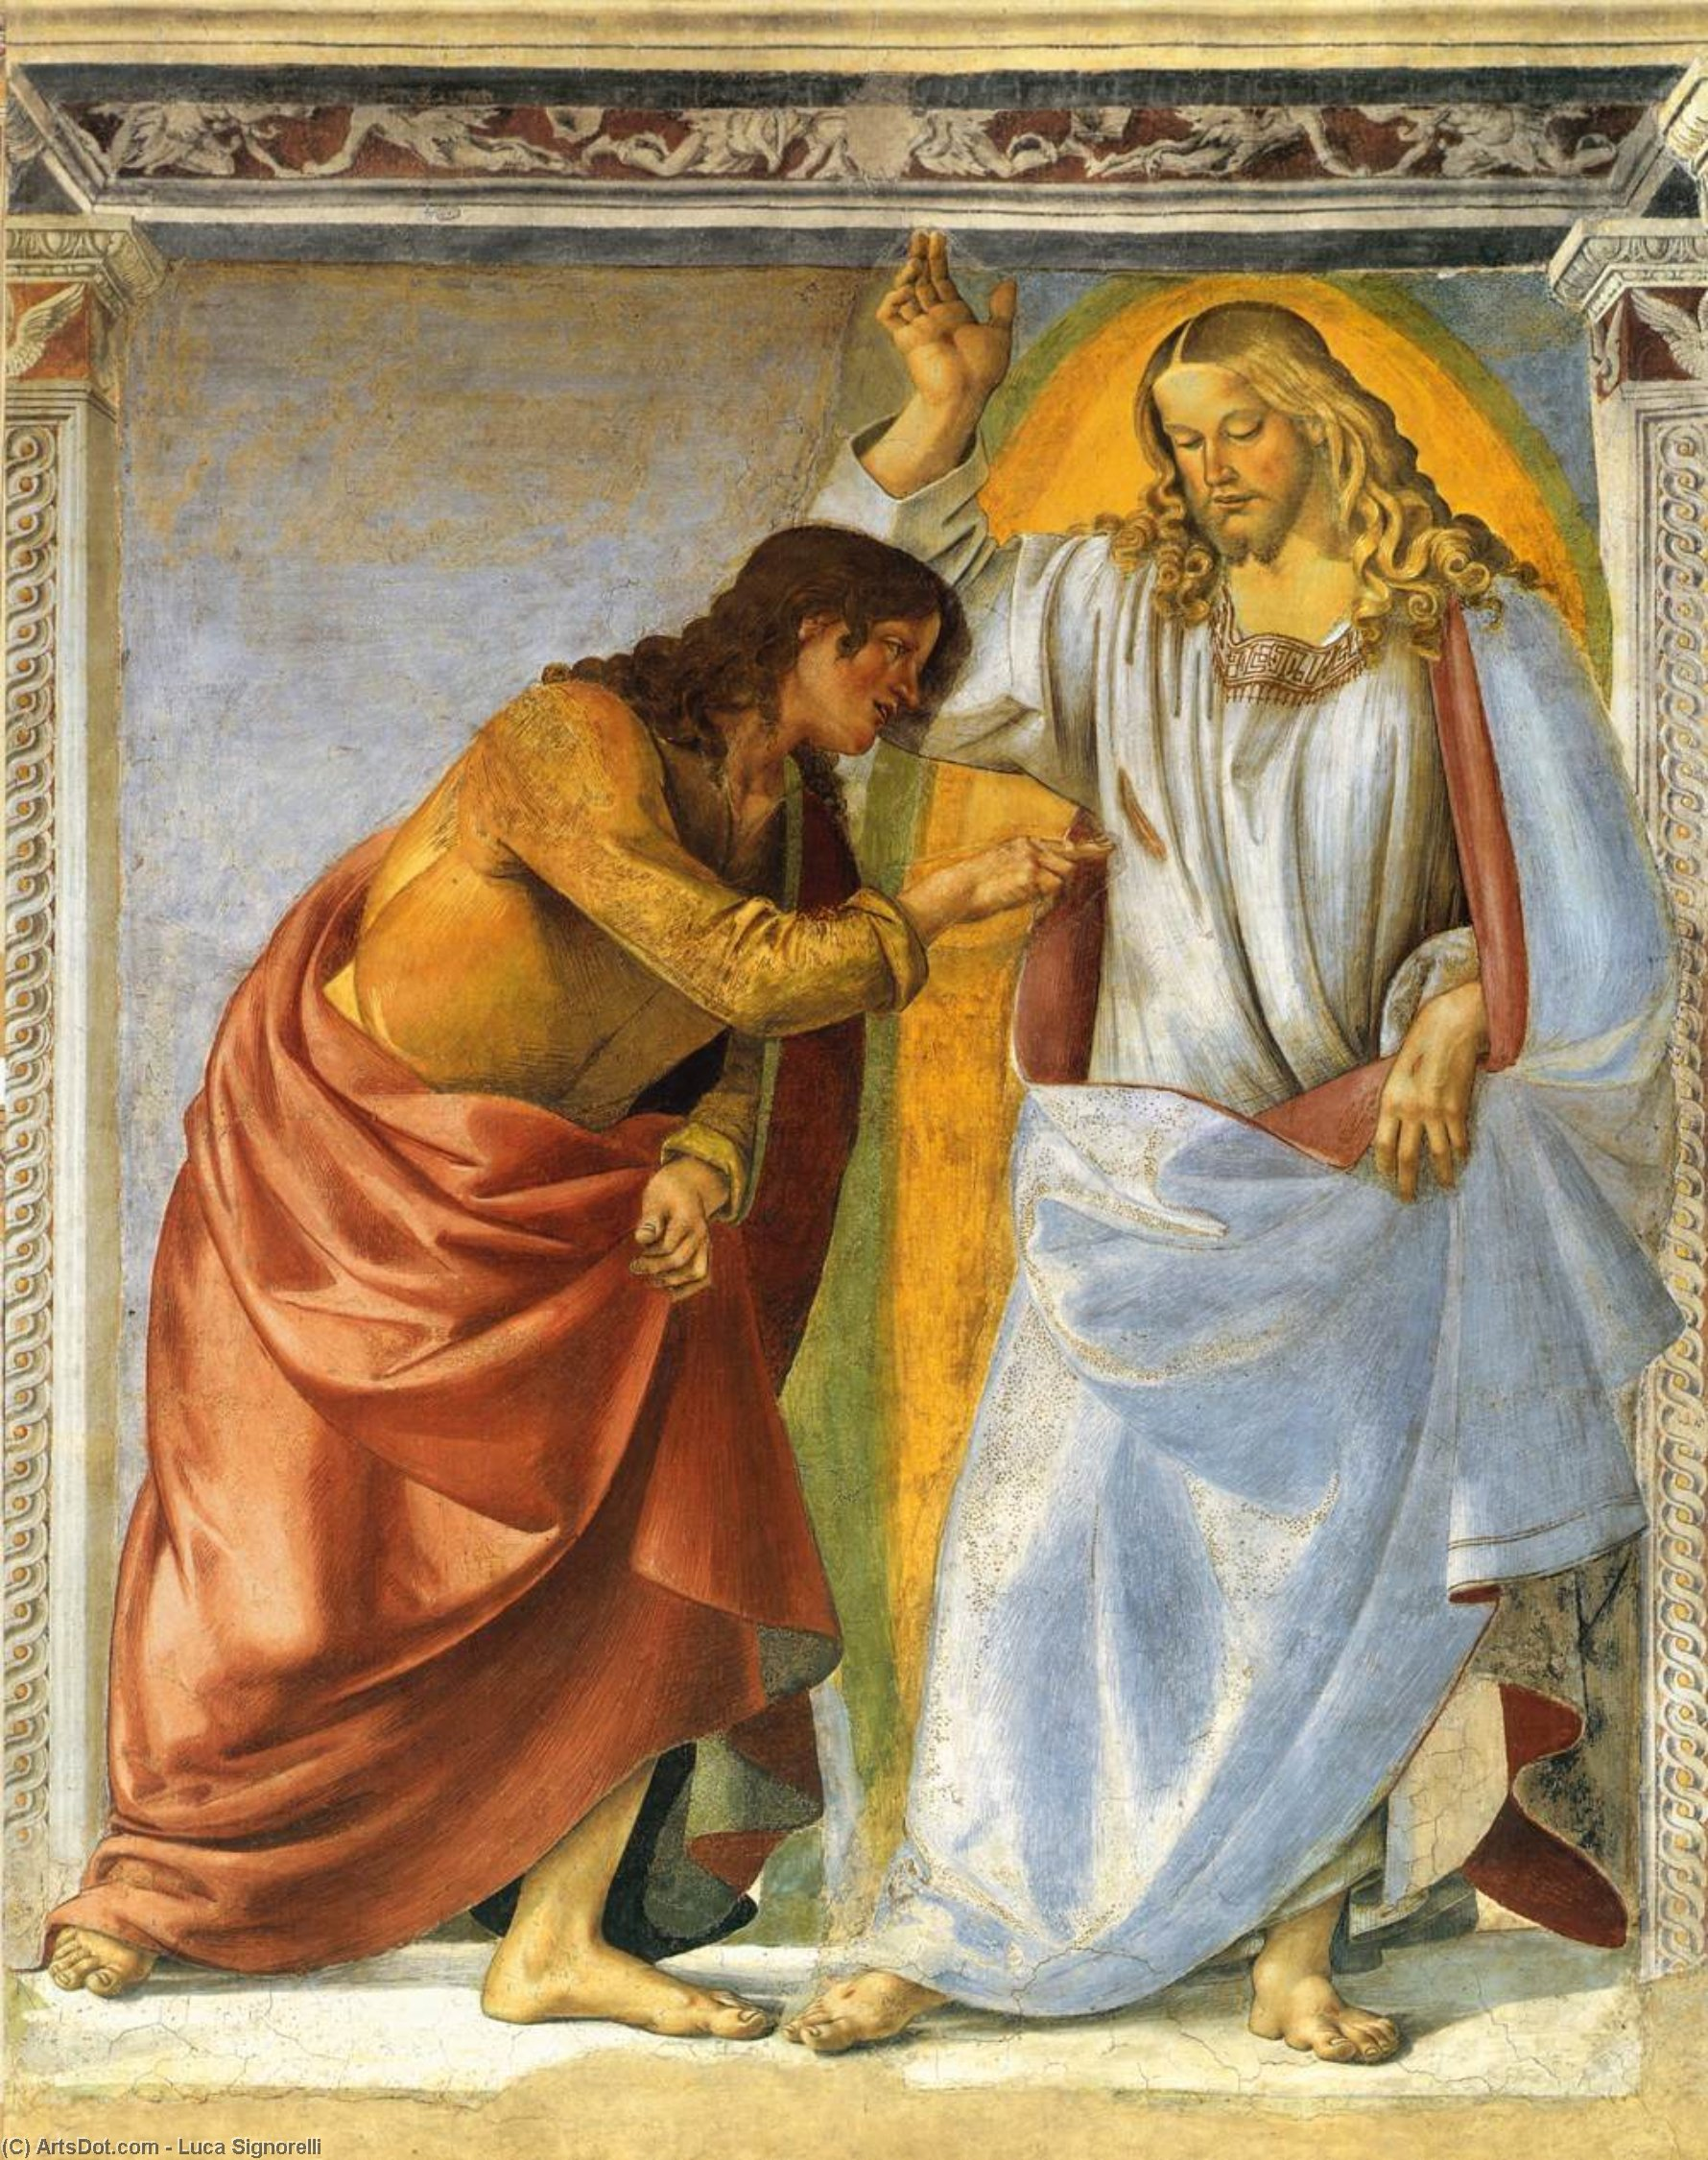 Christ and the Doubting Thomas, Frescoes by Luca Signorelli (1450-1523, Italy)